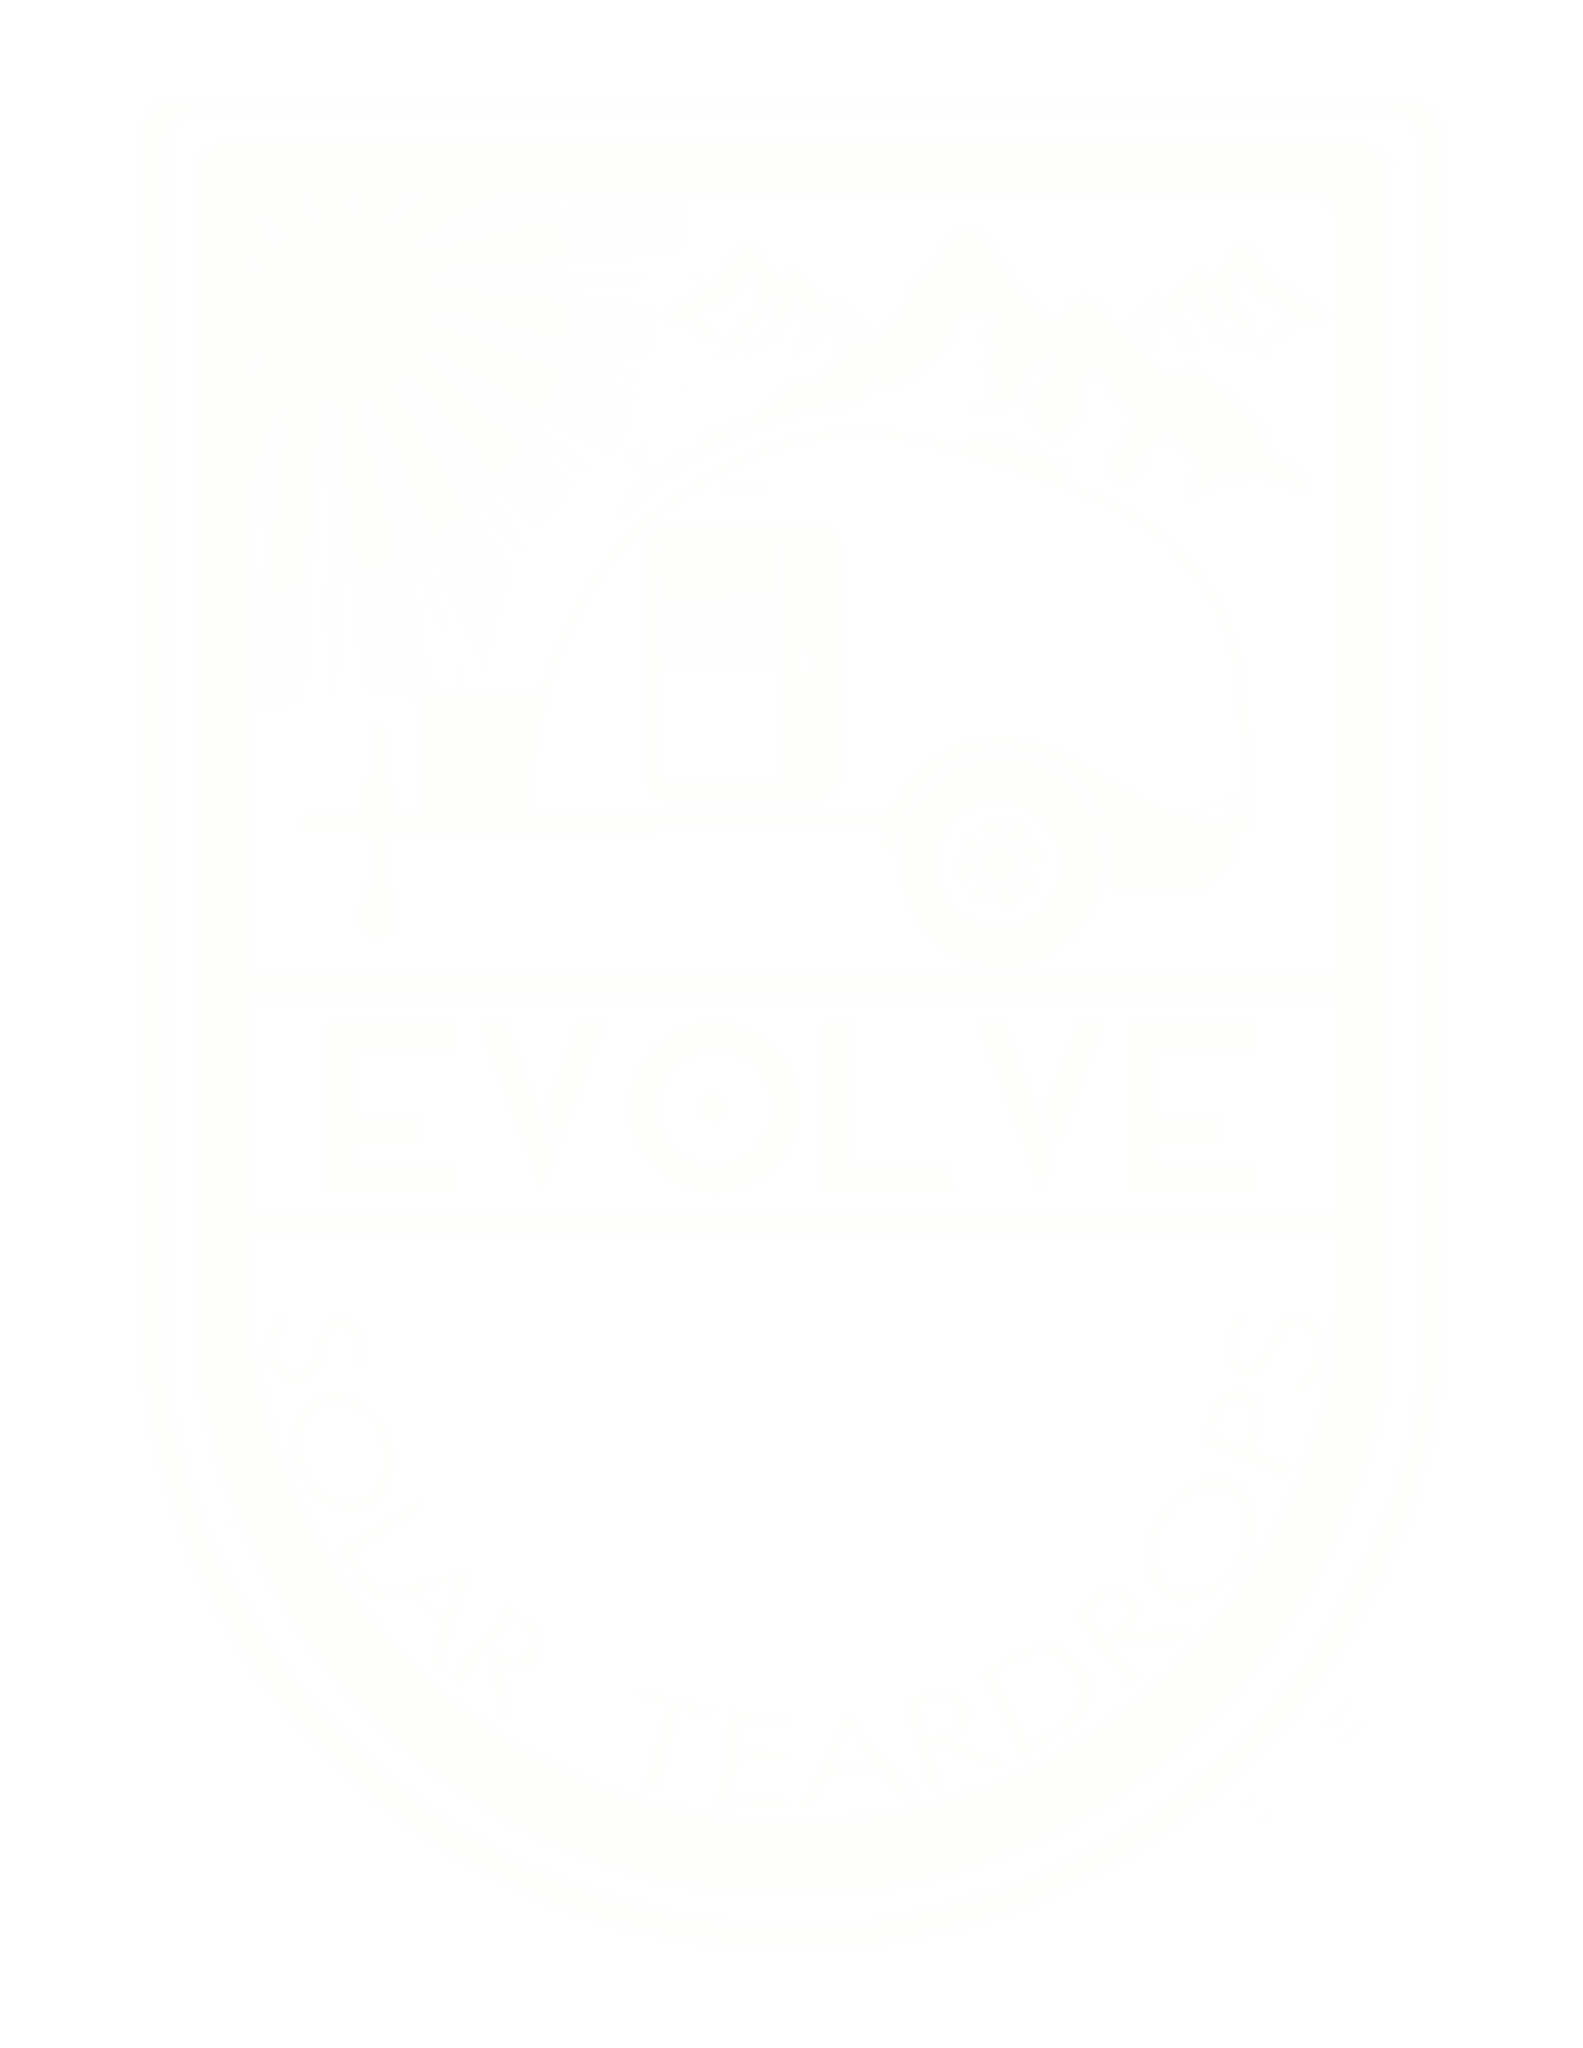 The Evolve Solar Teardrop Trailer Evolve-White-Shield